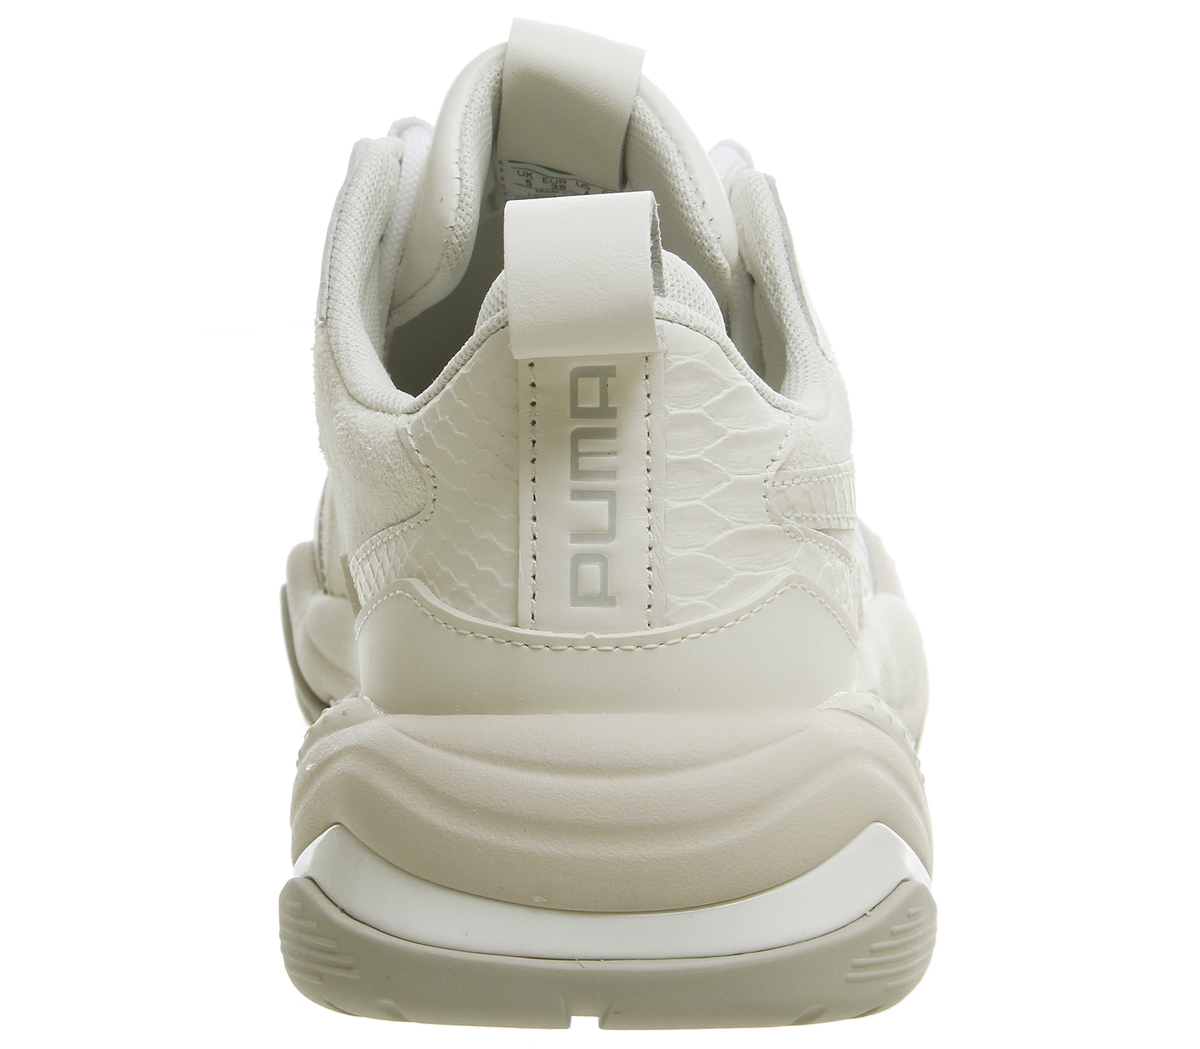 99aab48eac610d Puma Thunder Desert Trainers Bright White Star Grey Violet Trainers ...